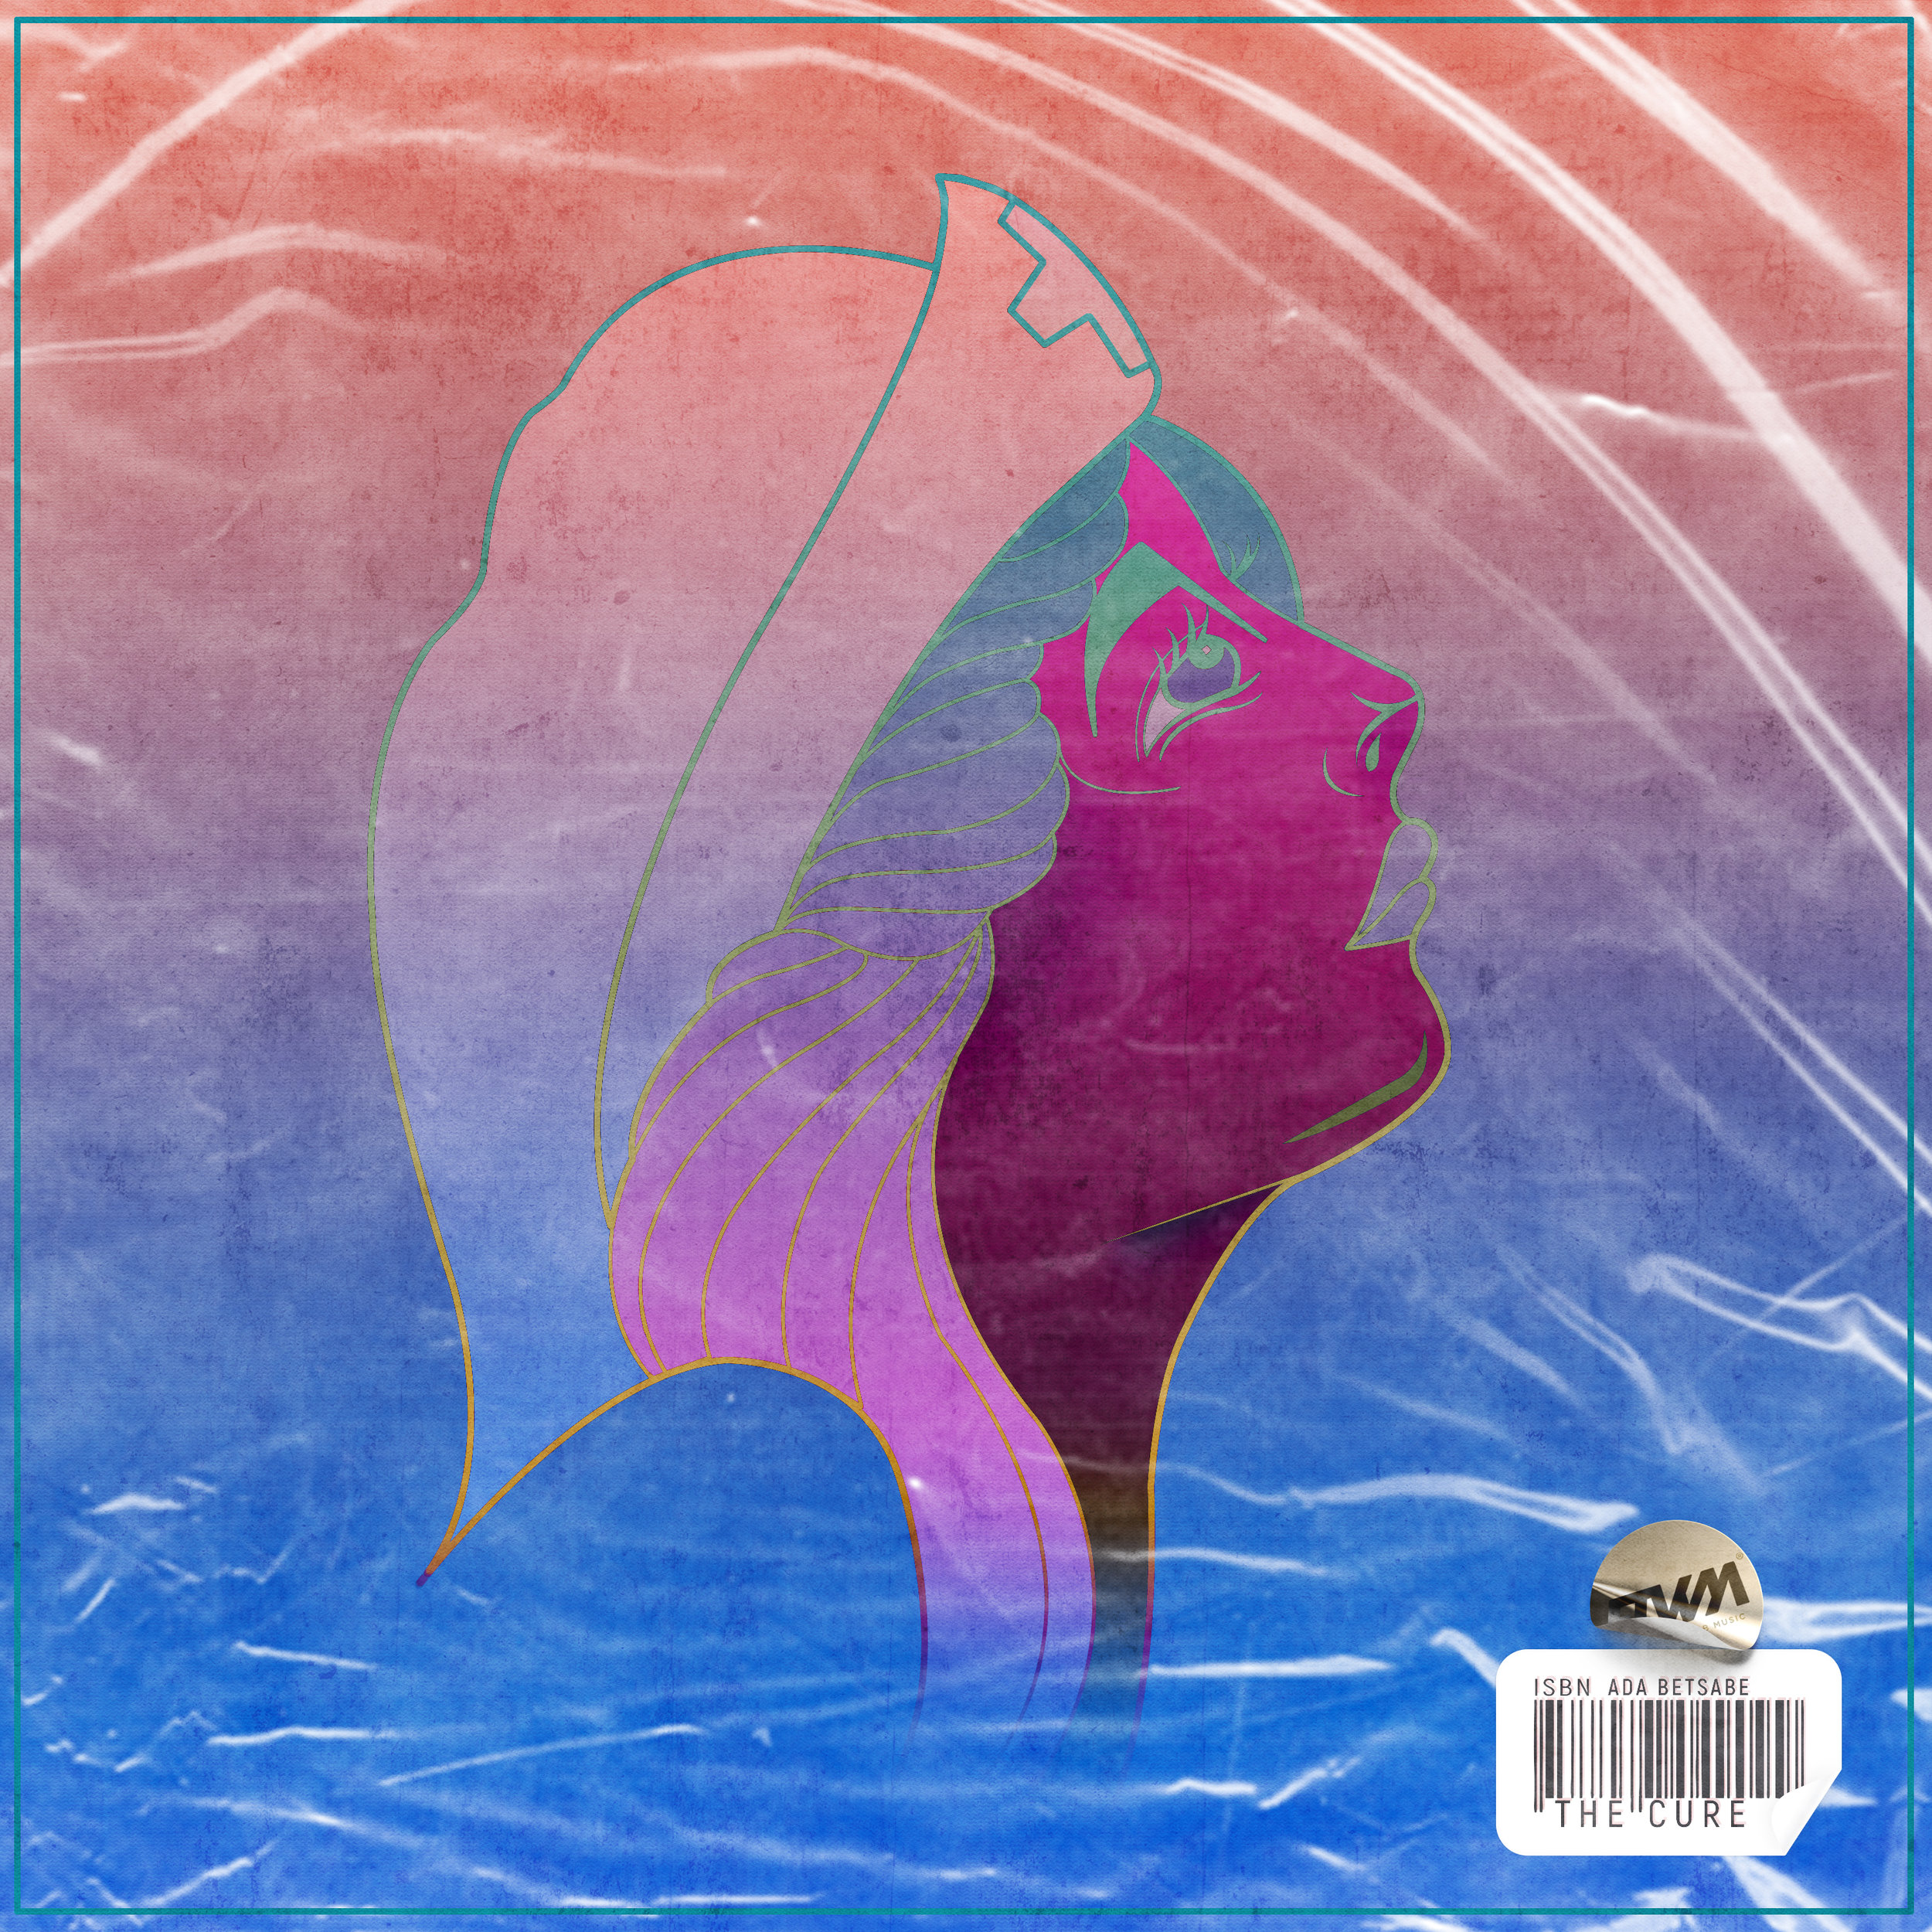 THE CURE - Single (2018) -